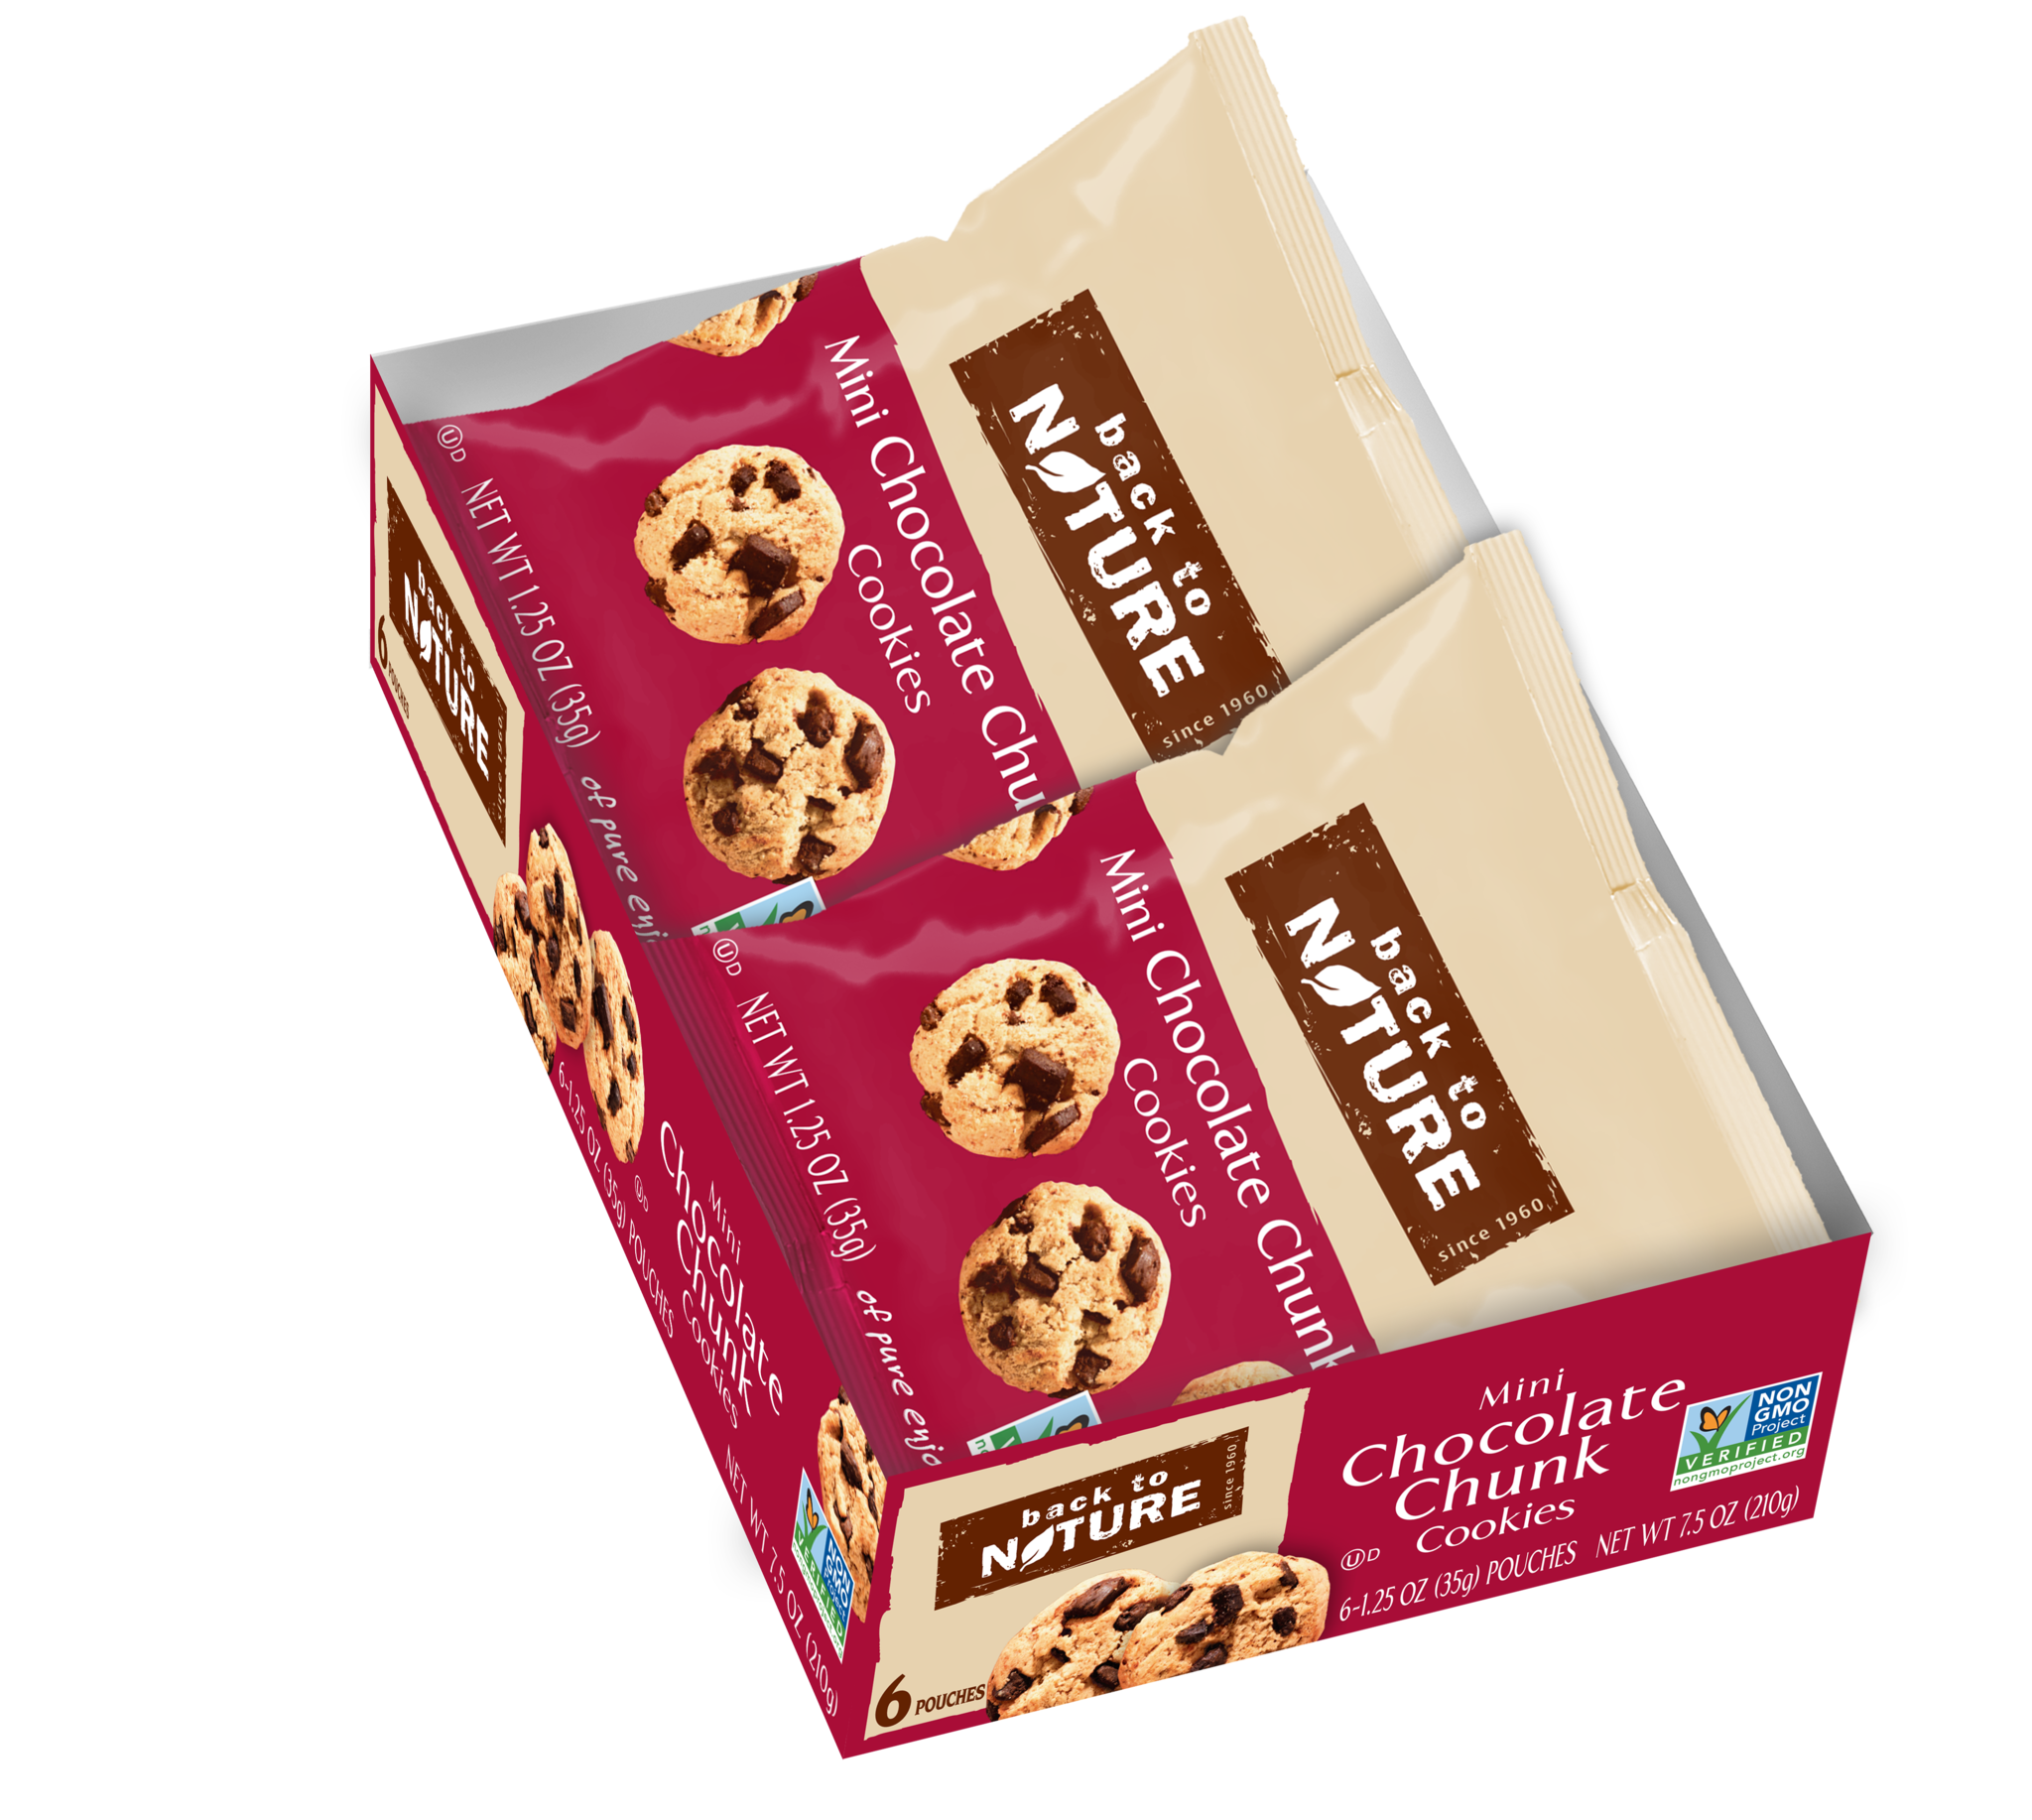 Back To Nature Mini Chocolate Chunk Cookies - Snack Pack: 100 bags